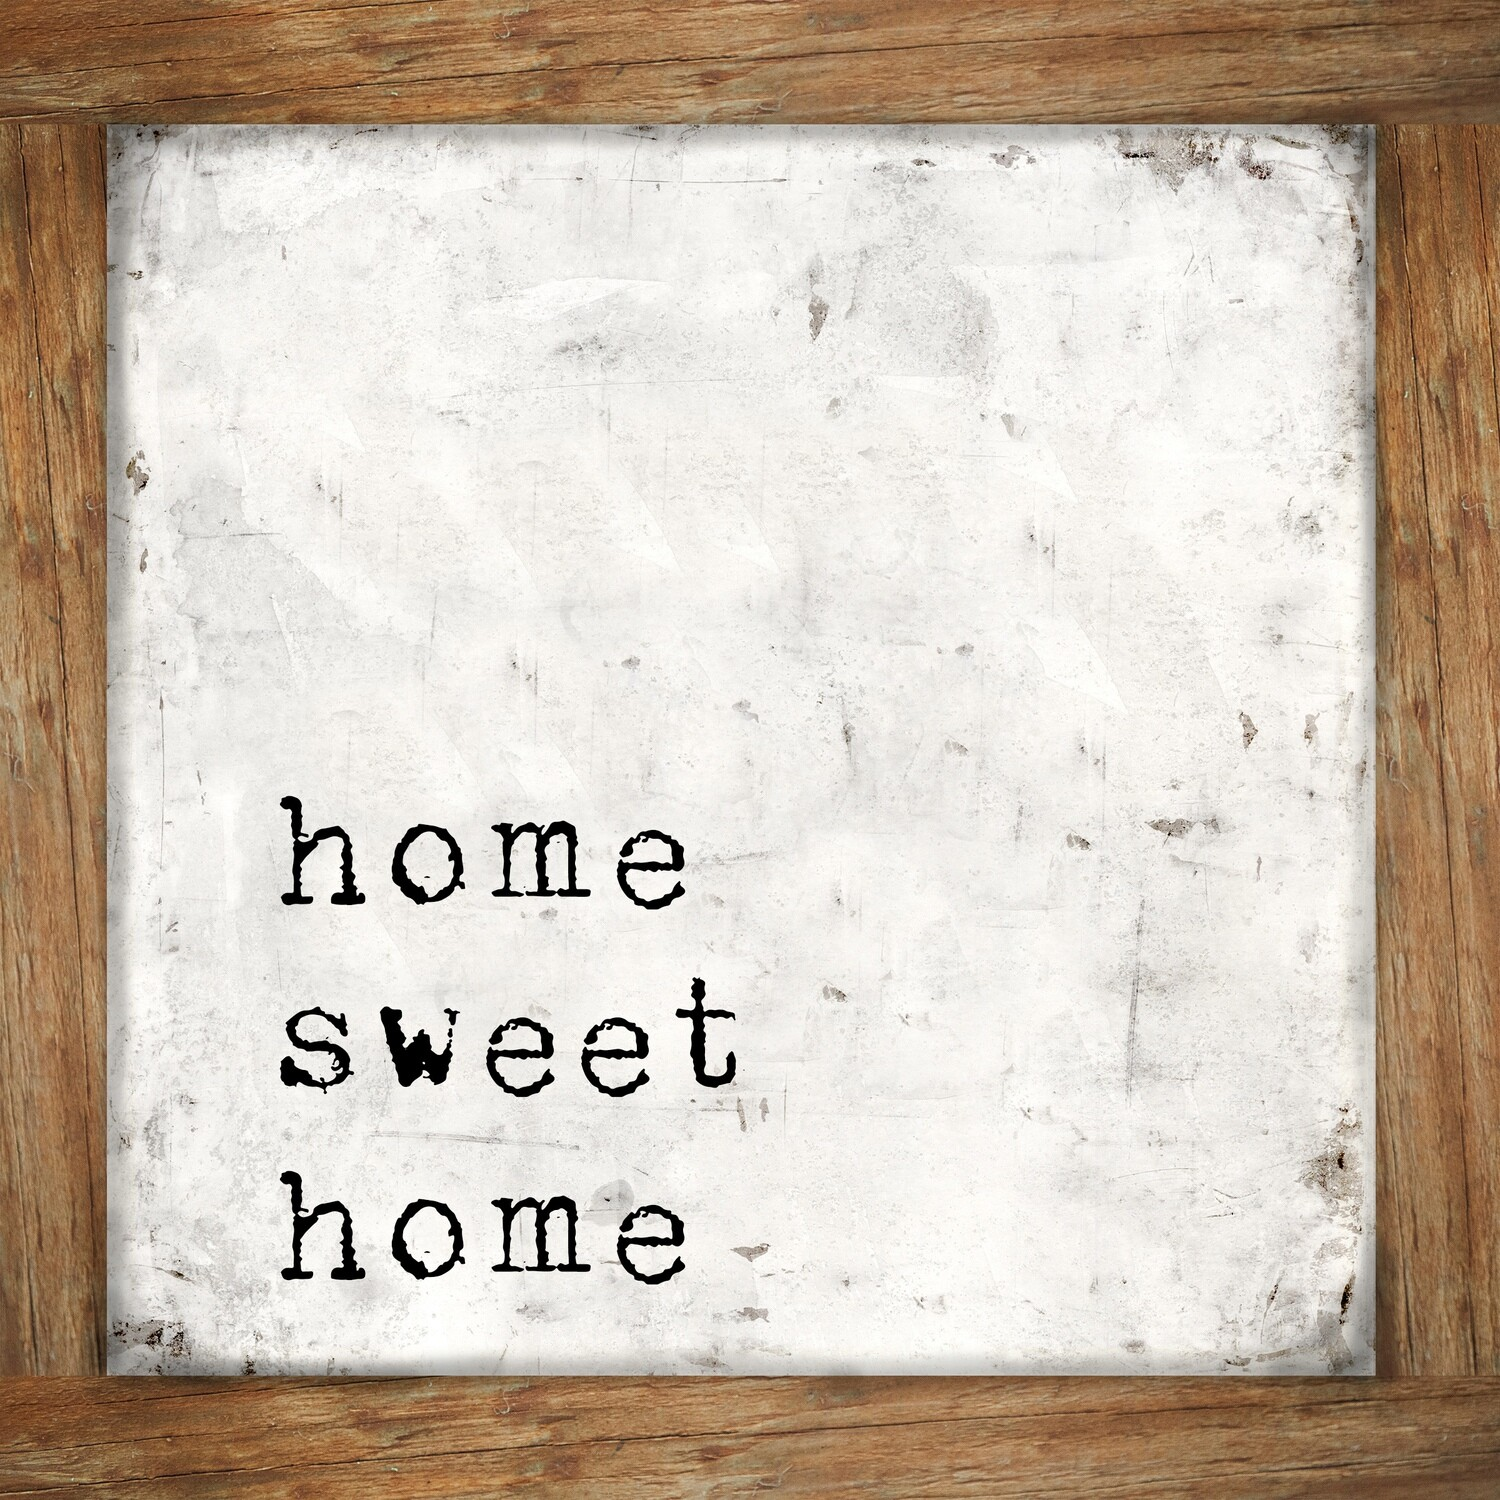 """Home Sweet Home"" wood frame Print on Wood 12x12 Overstock"